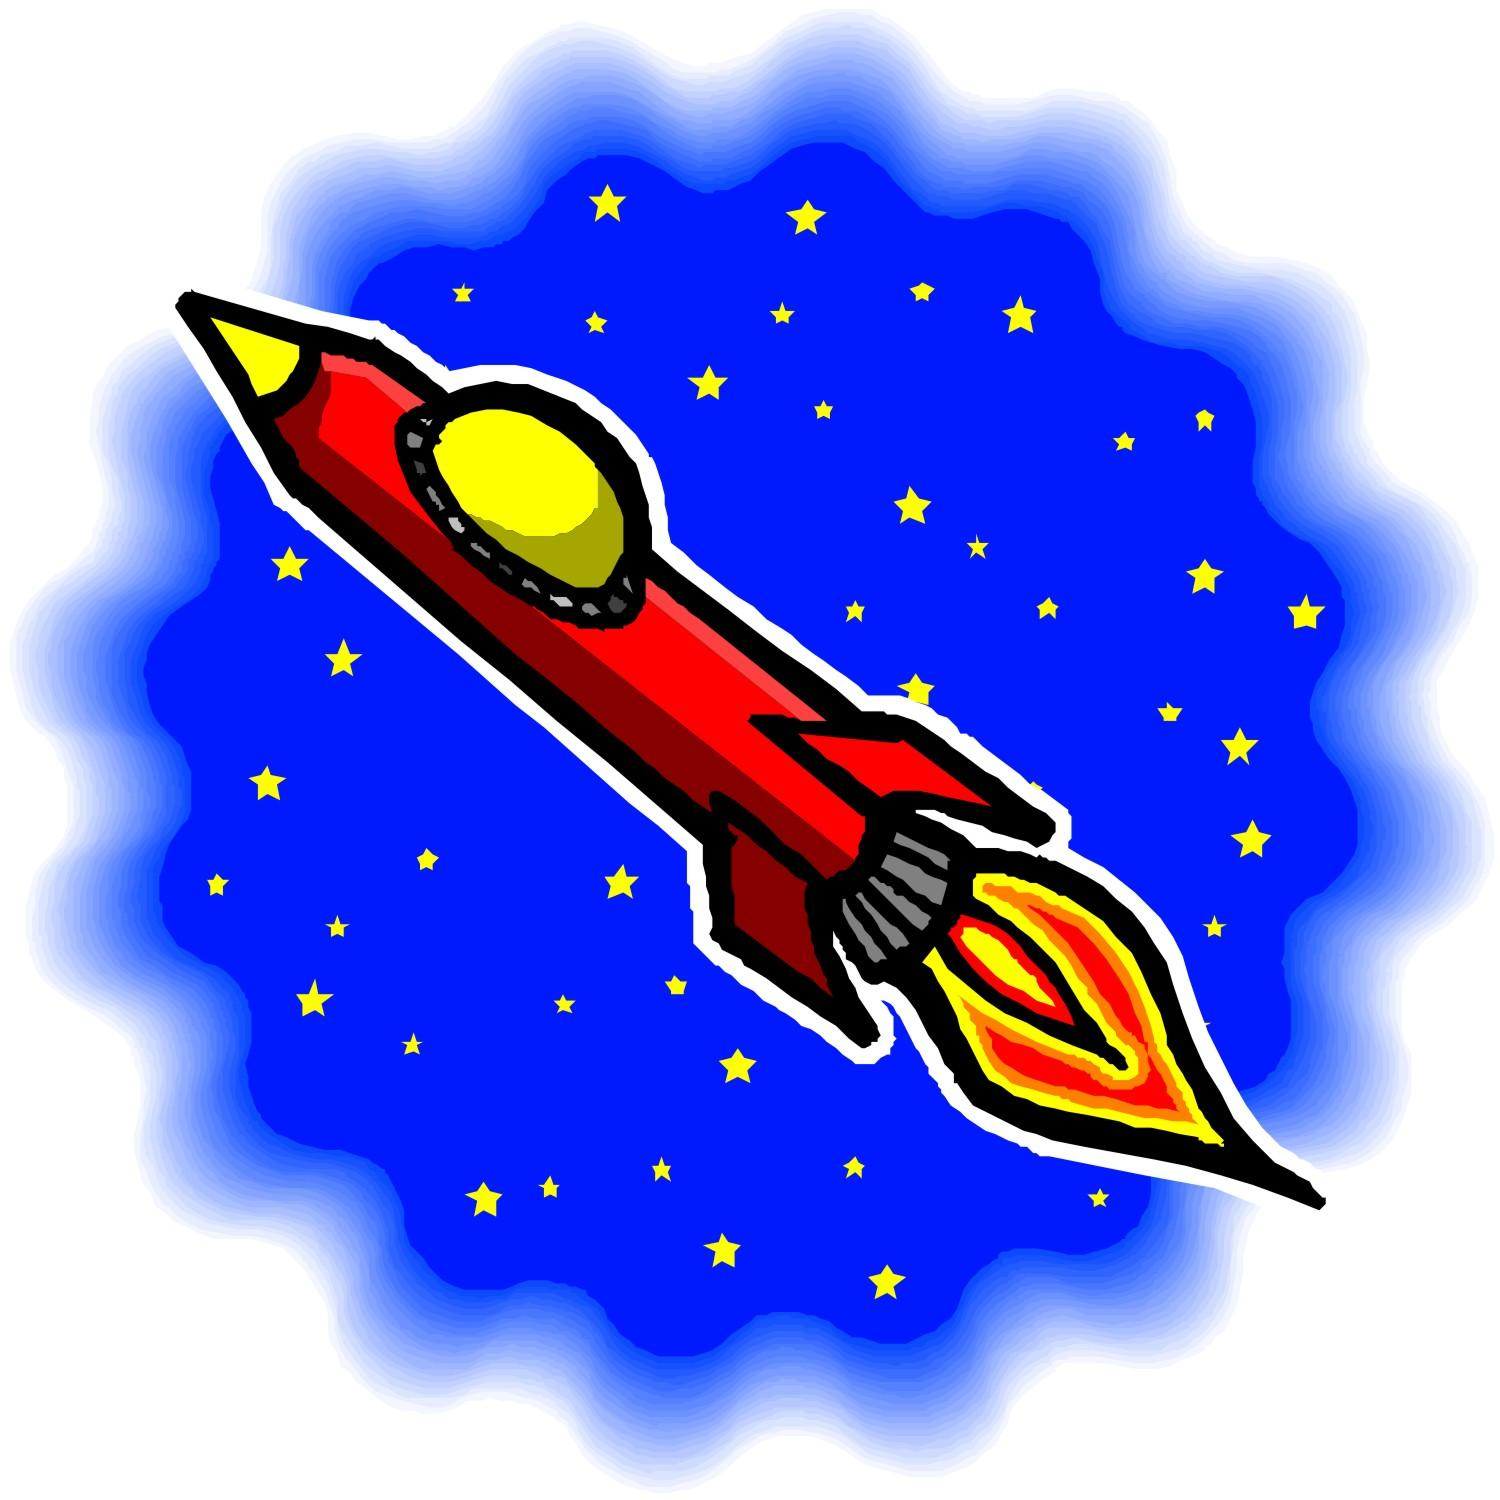 Red rocket clipart